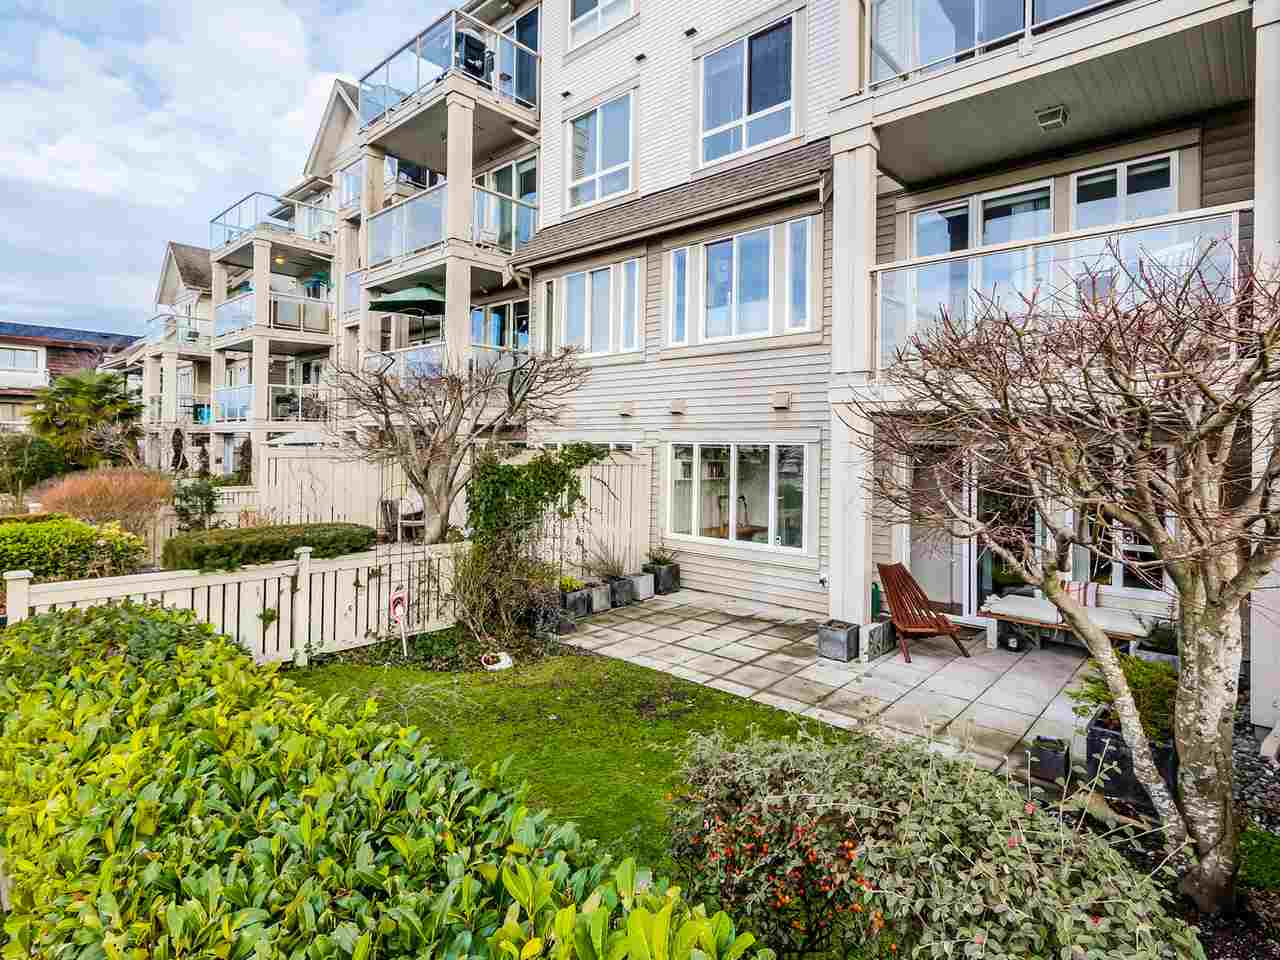 Photo 5: 109 333 E 1ST STREET in North Vancouver: Lower Lonsdale Condo for sale : MLS® # R2032321